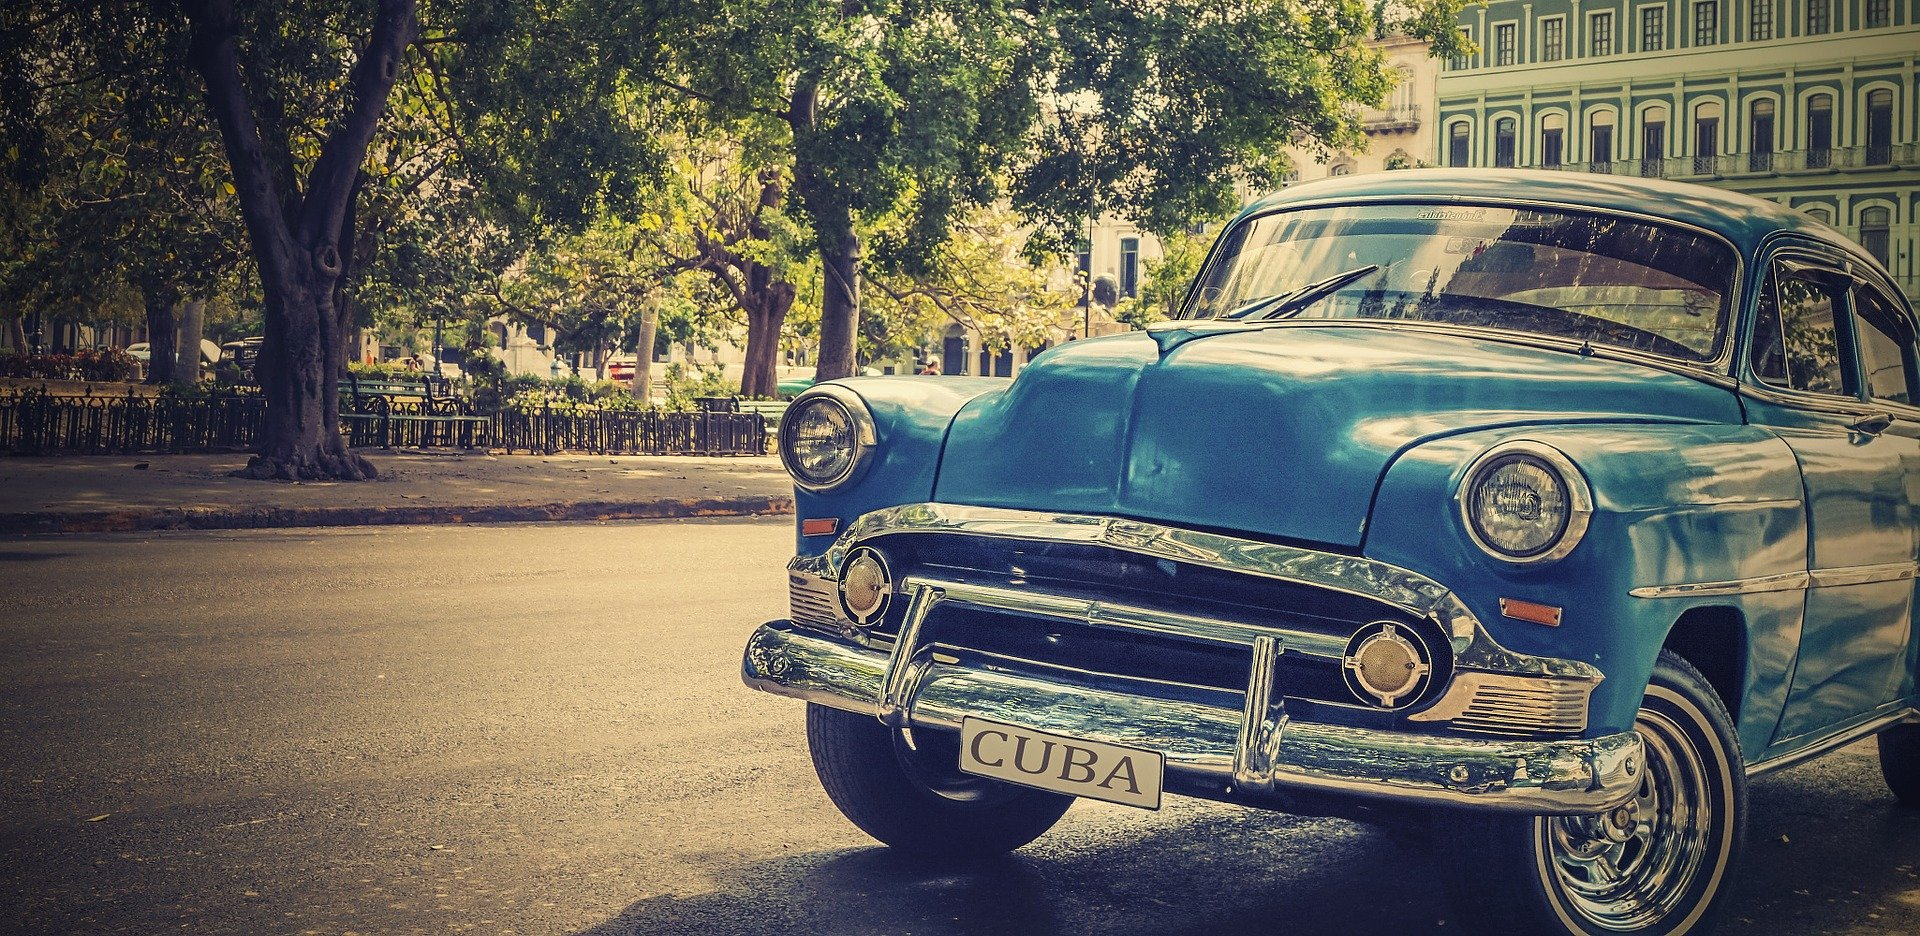 Winter Sun Holiday Destination ? Cuba